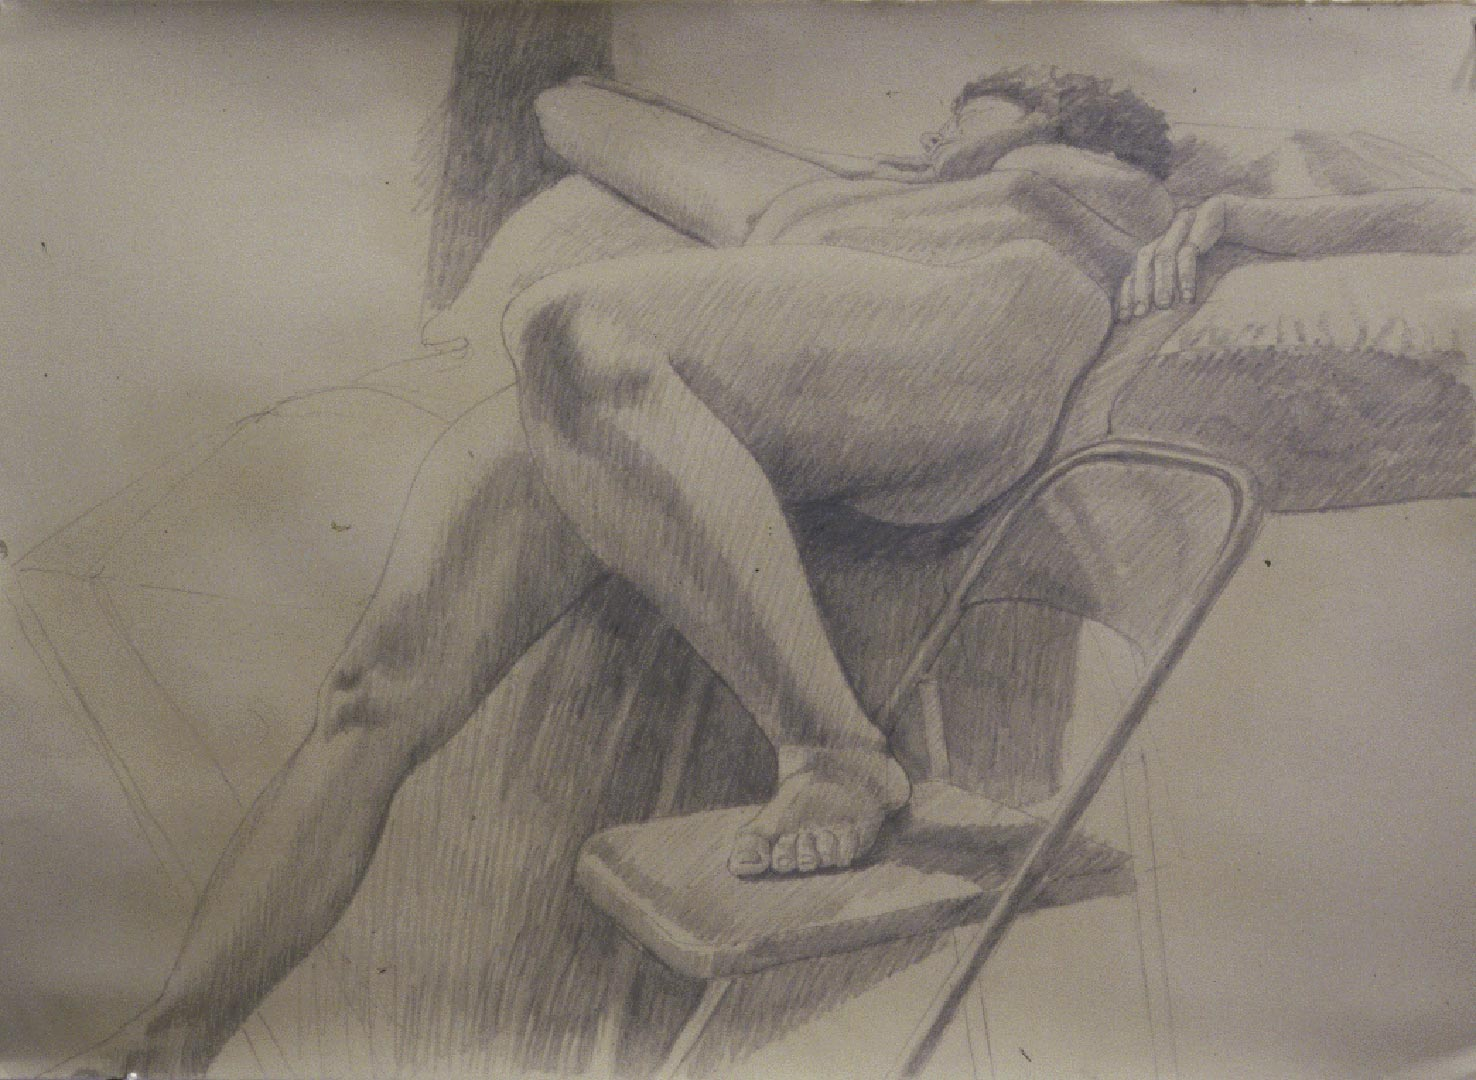 1986 Model Reclining with One Foot on a Folding Chair Pencil 22.125 x 30.5